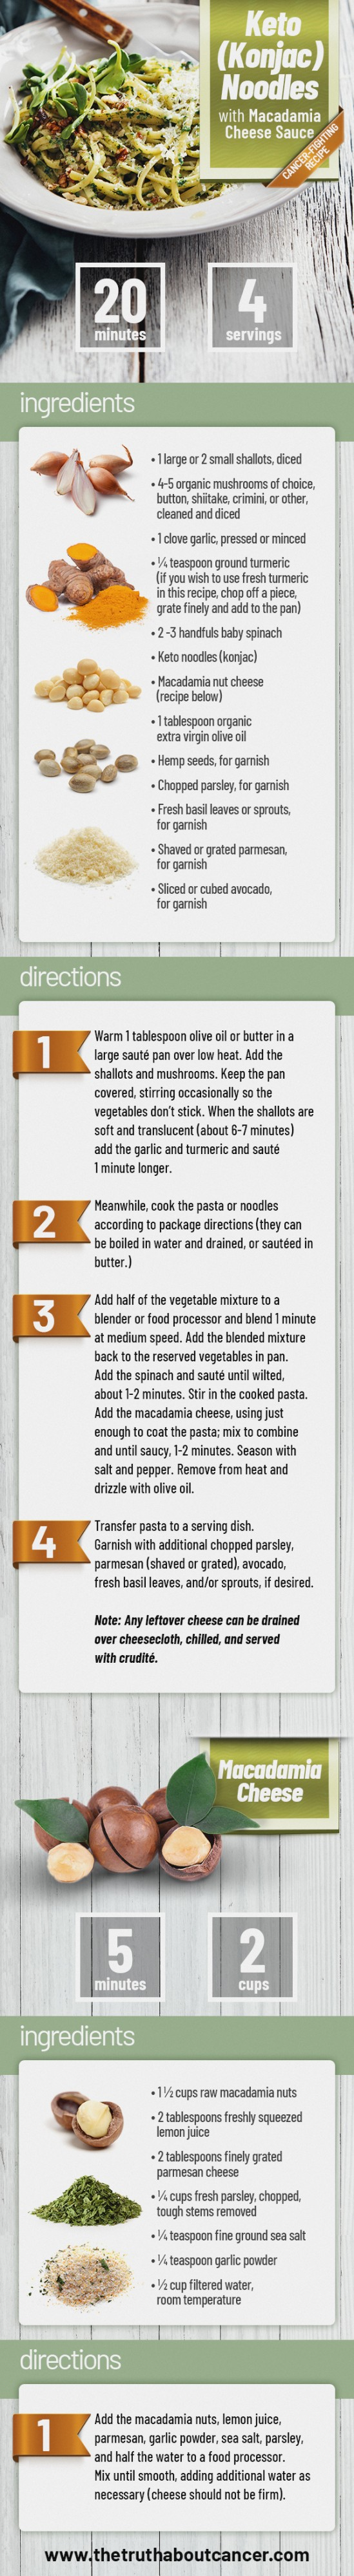 vegetarian keto recipe infographic